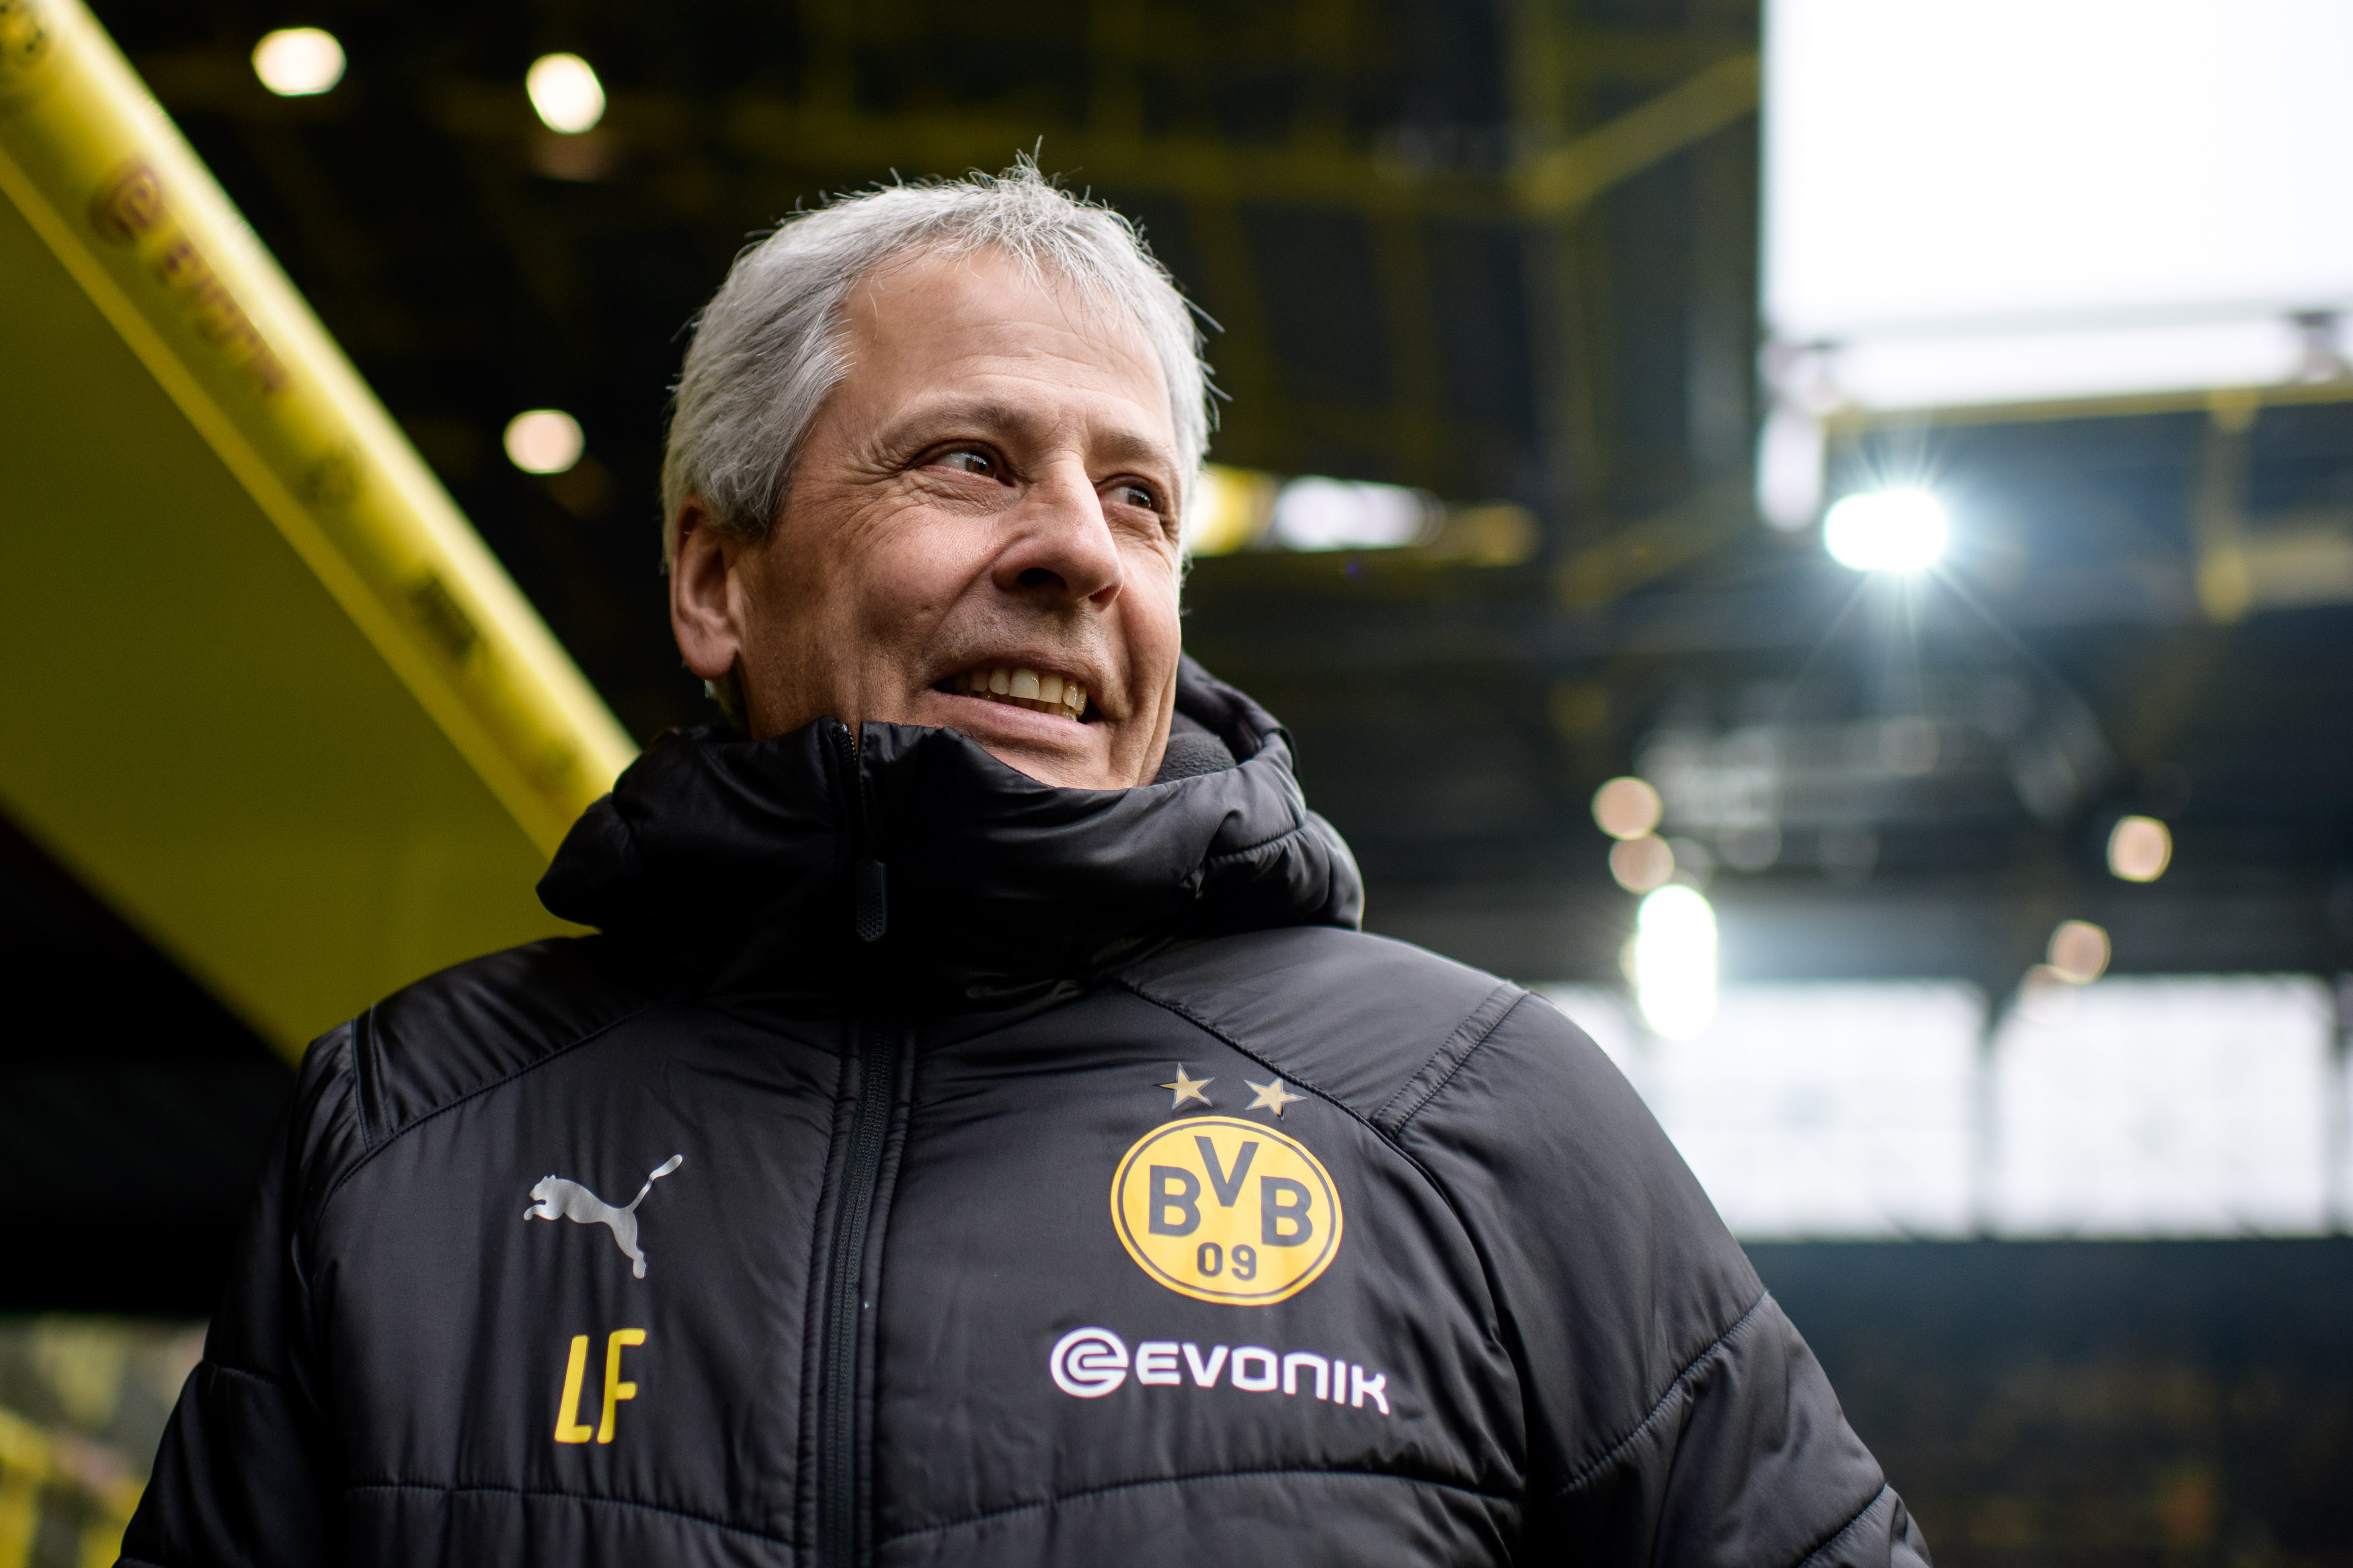 Dortmund head coach Lucien Favre is known to put his trust in youngsters (Photo by Jörg Schüler/Getty Images)